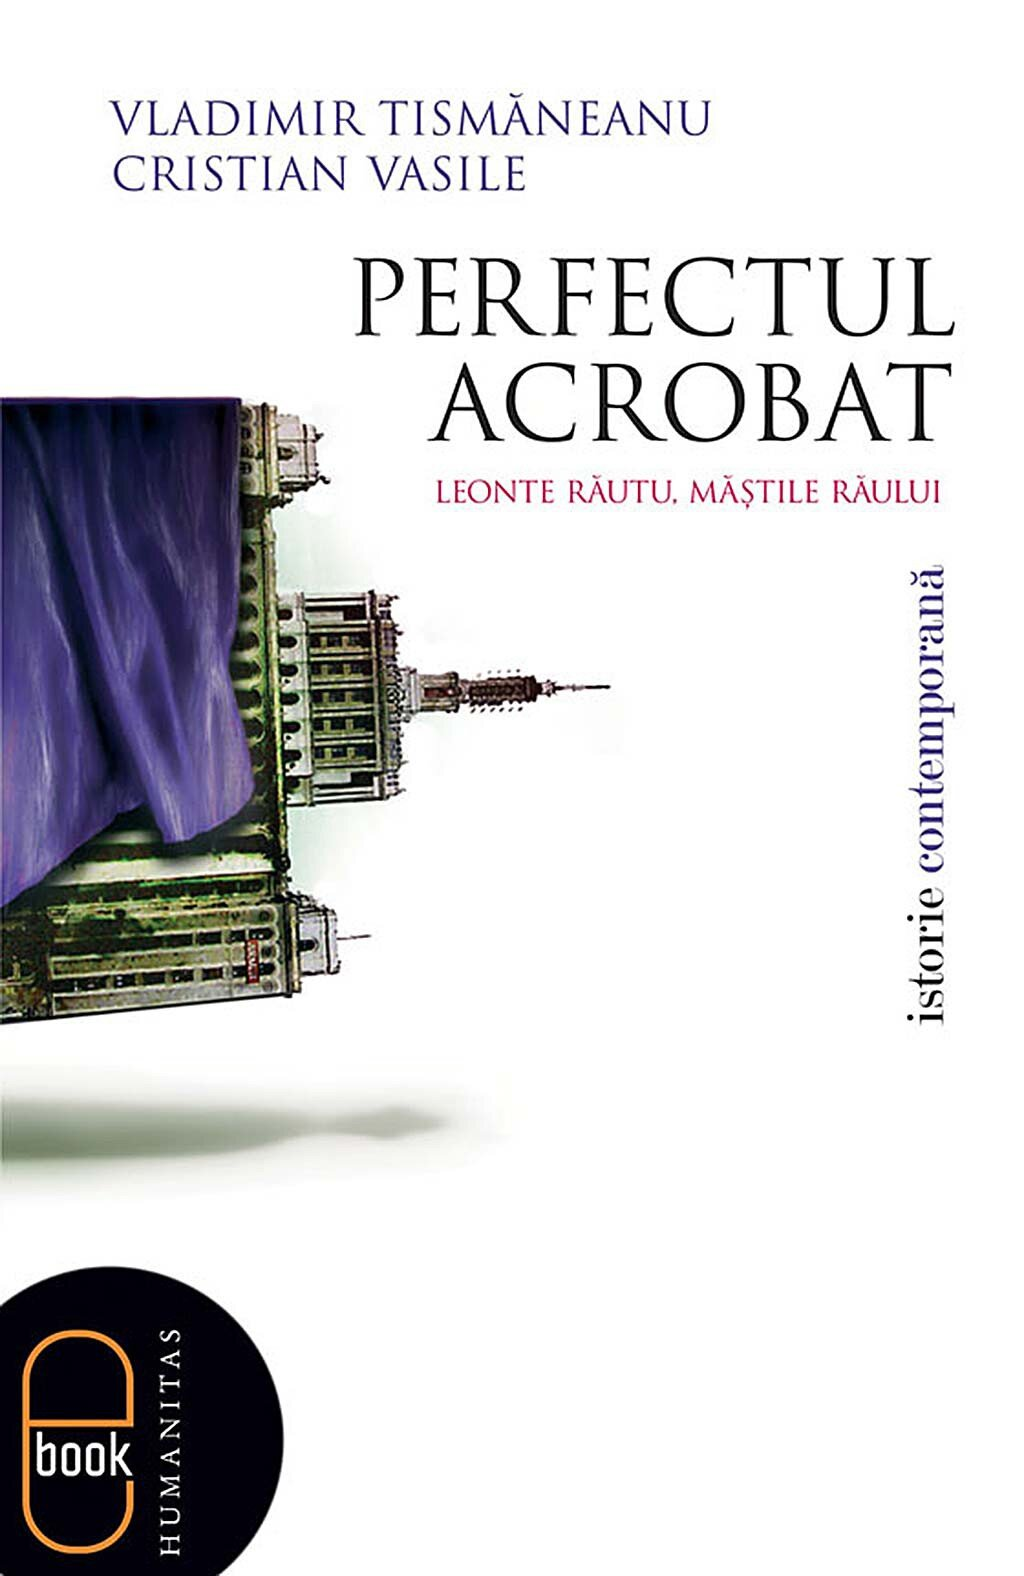 Perfectul acrobat. Leonte Rautu, mastile raului PDF (Download eBook)